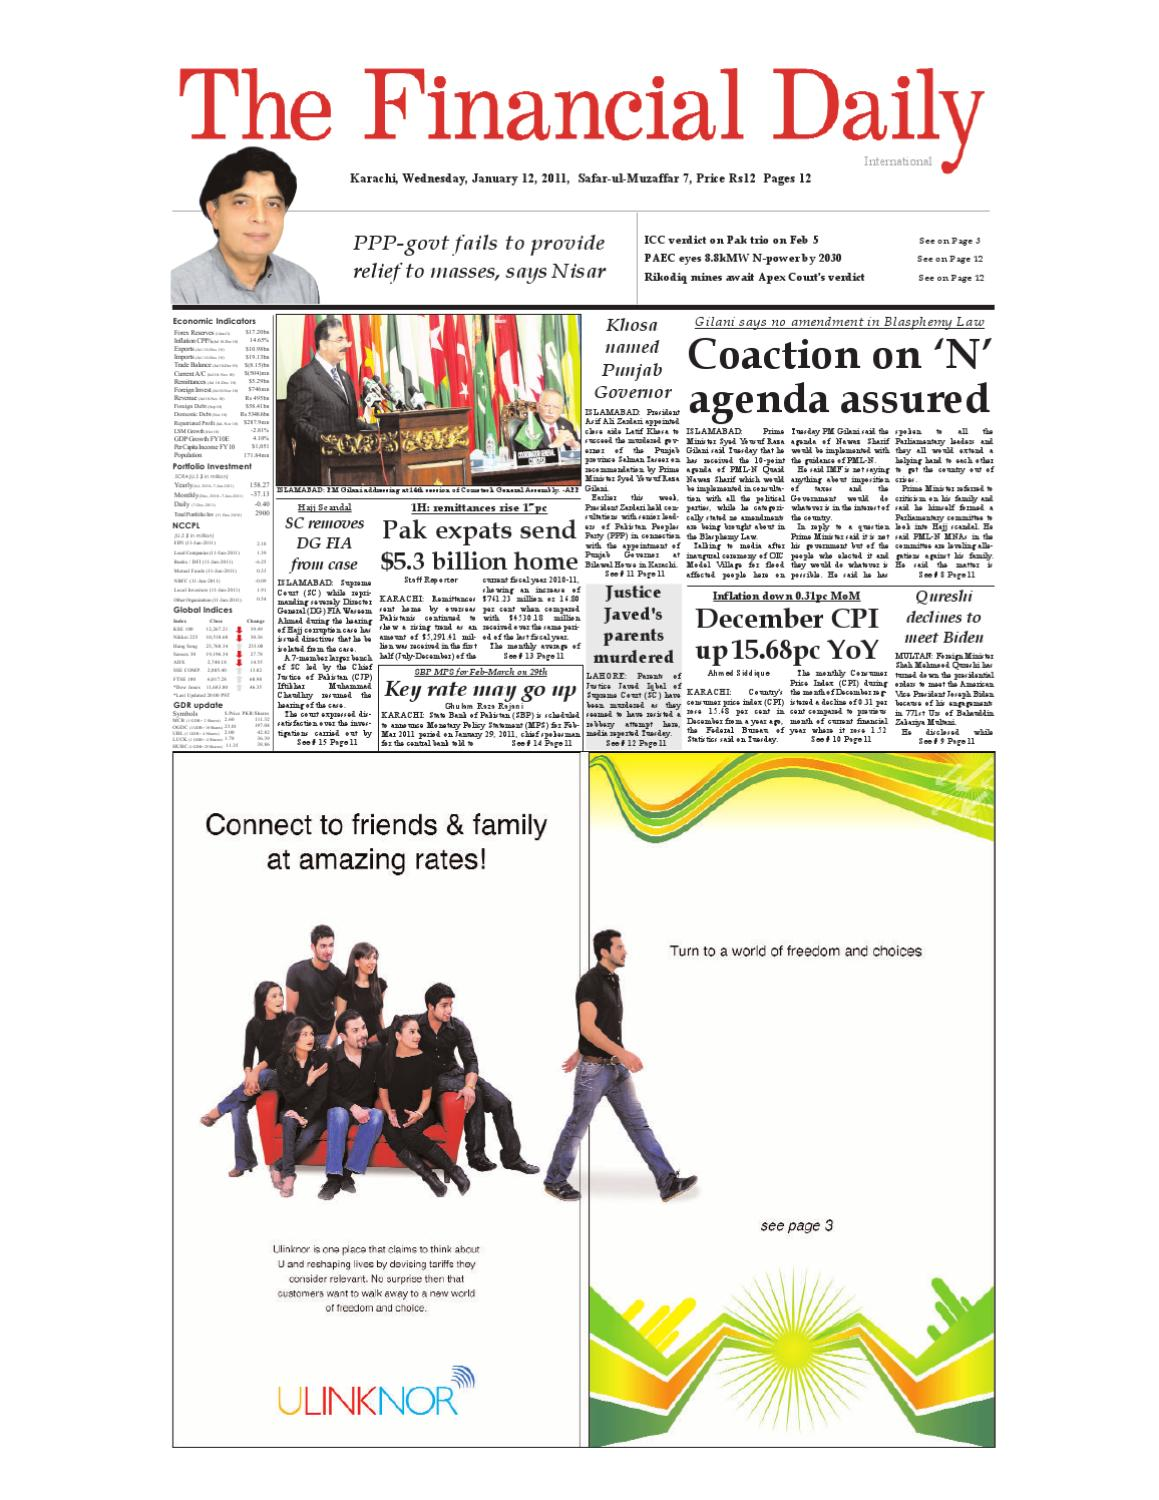 The Financial Daily-Epaper-12-01-2011 by The Financial Daily